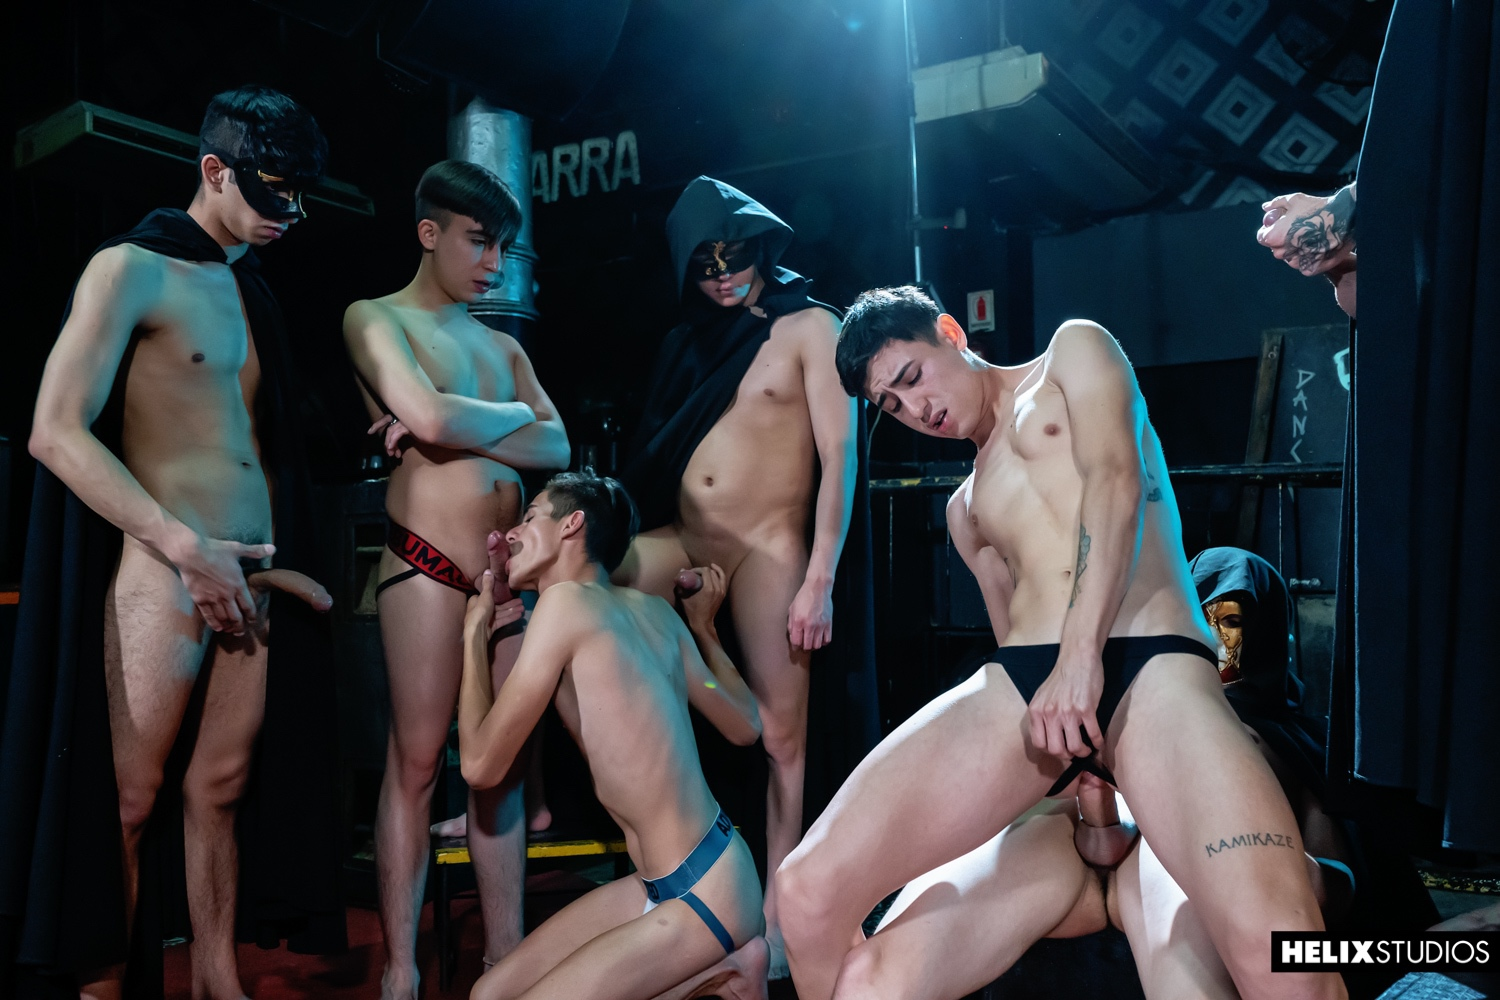 Helix – Dave Andrew, Sly Conan, Jack Moon, Liam Travis